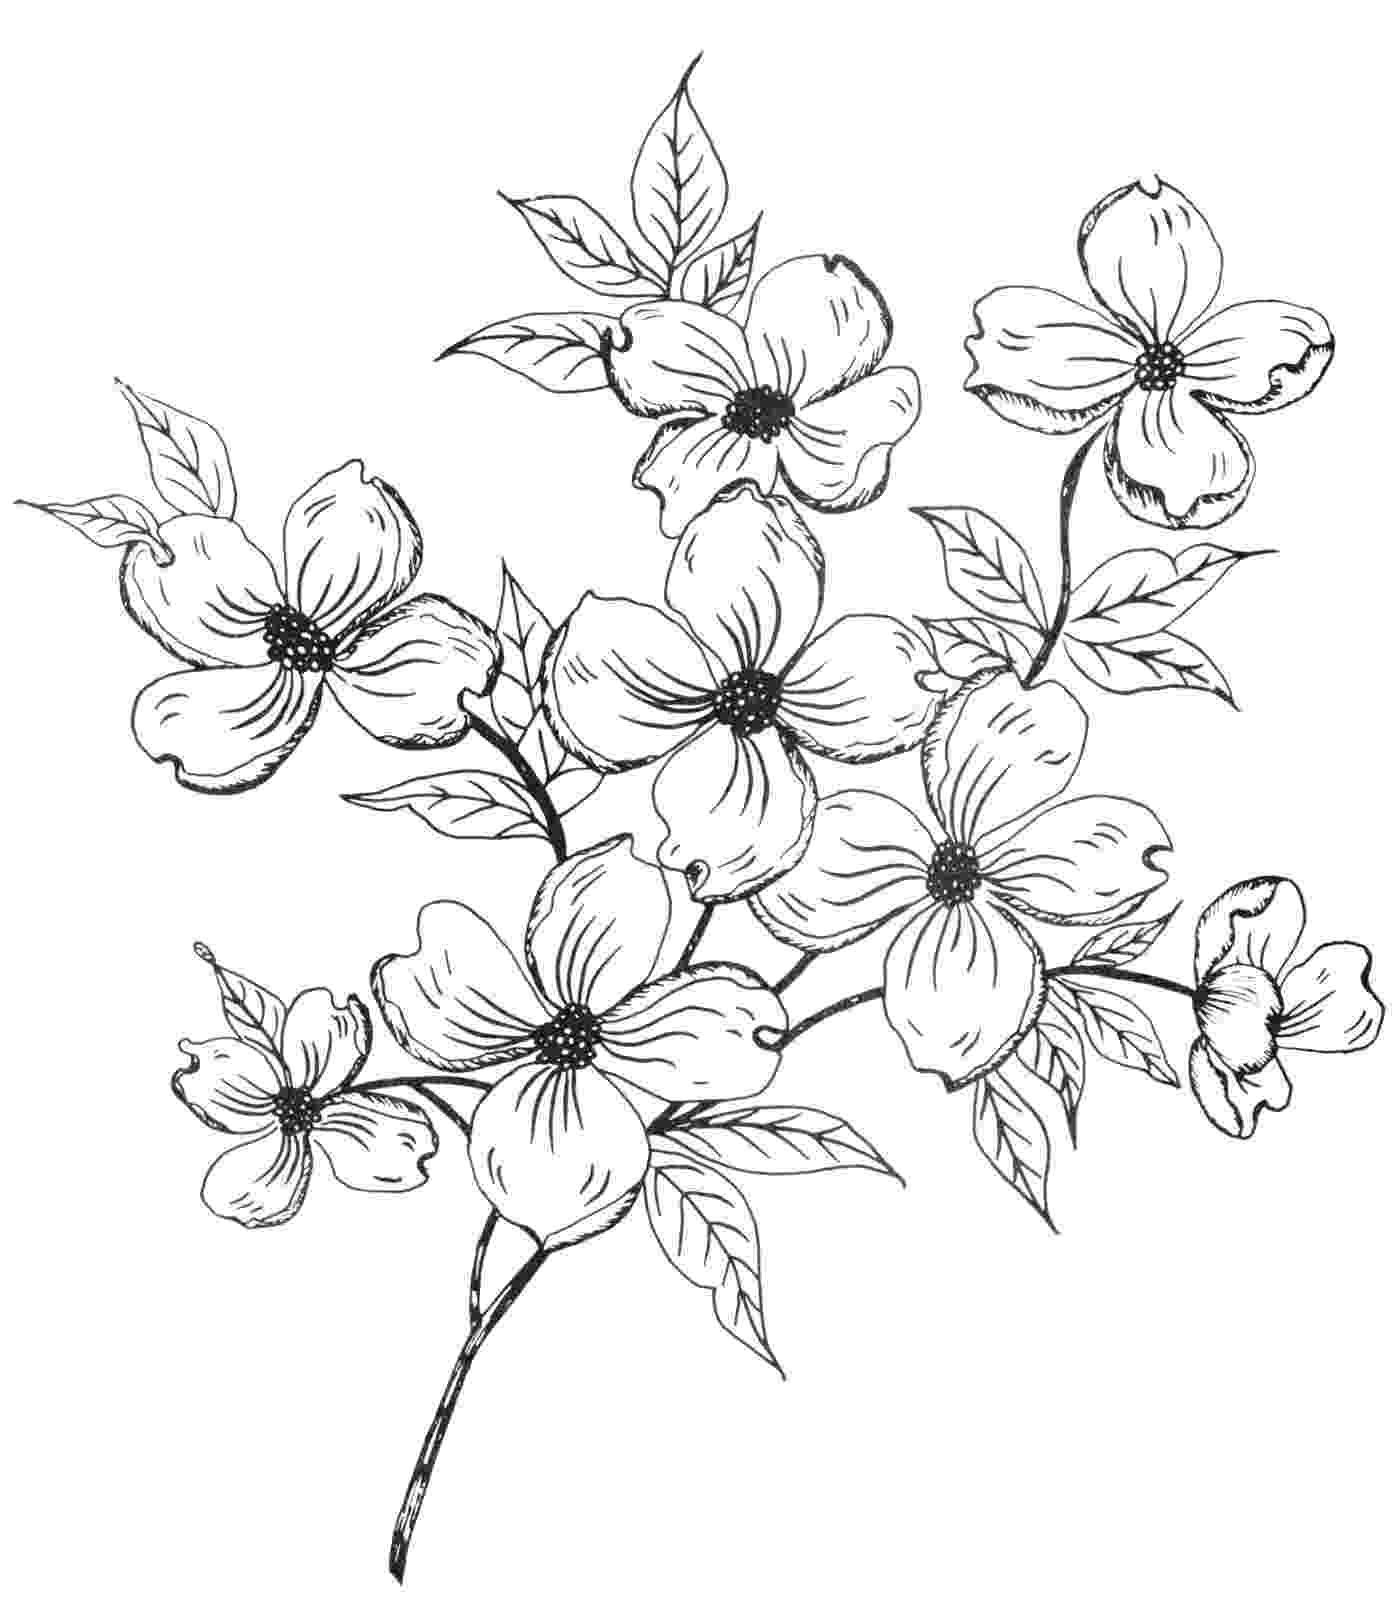 coloring pages of dogwood flowers flowering dogwood tree coloring page free printable coloring dogwood flowers pages of